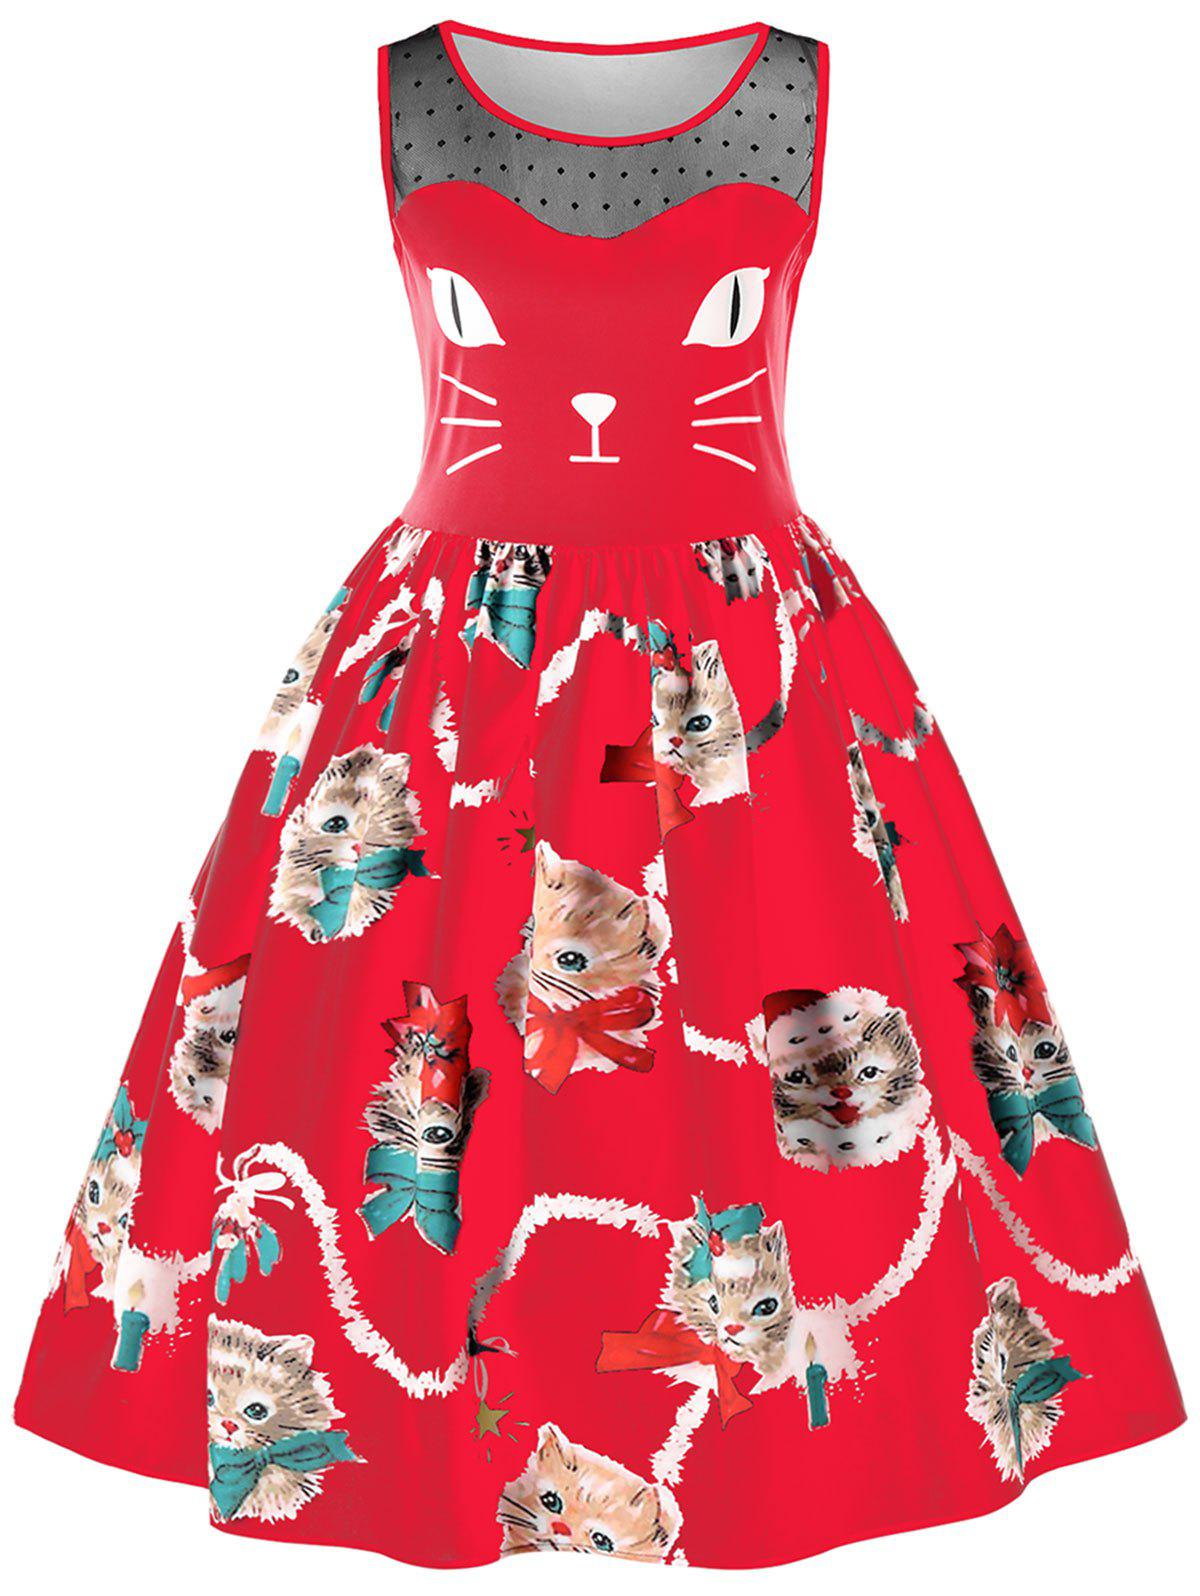 cbe17aaf0 38% OFF] Sleeveless Kitten Print Swing Dress | Rosegal